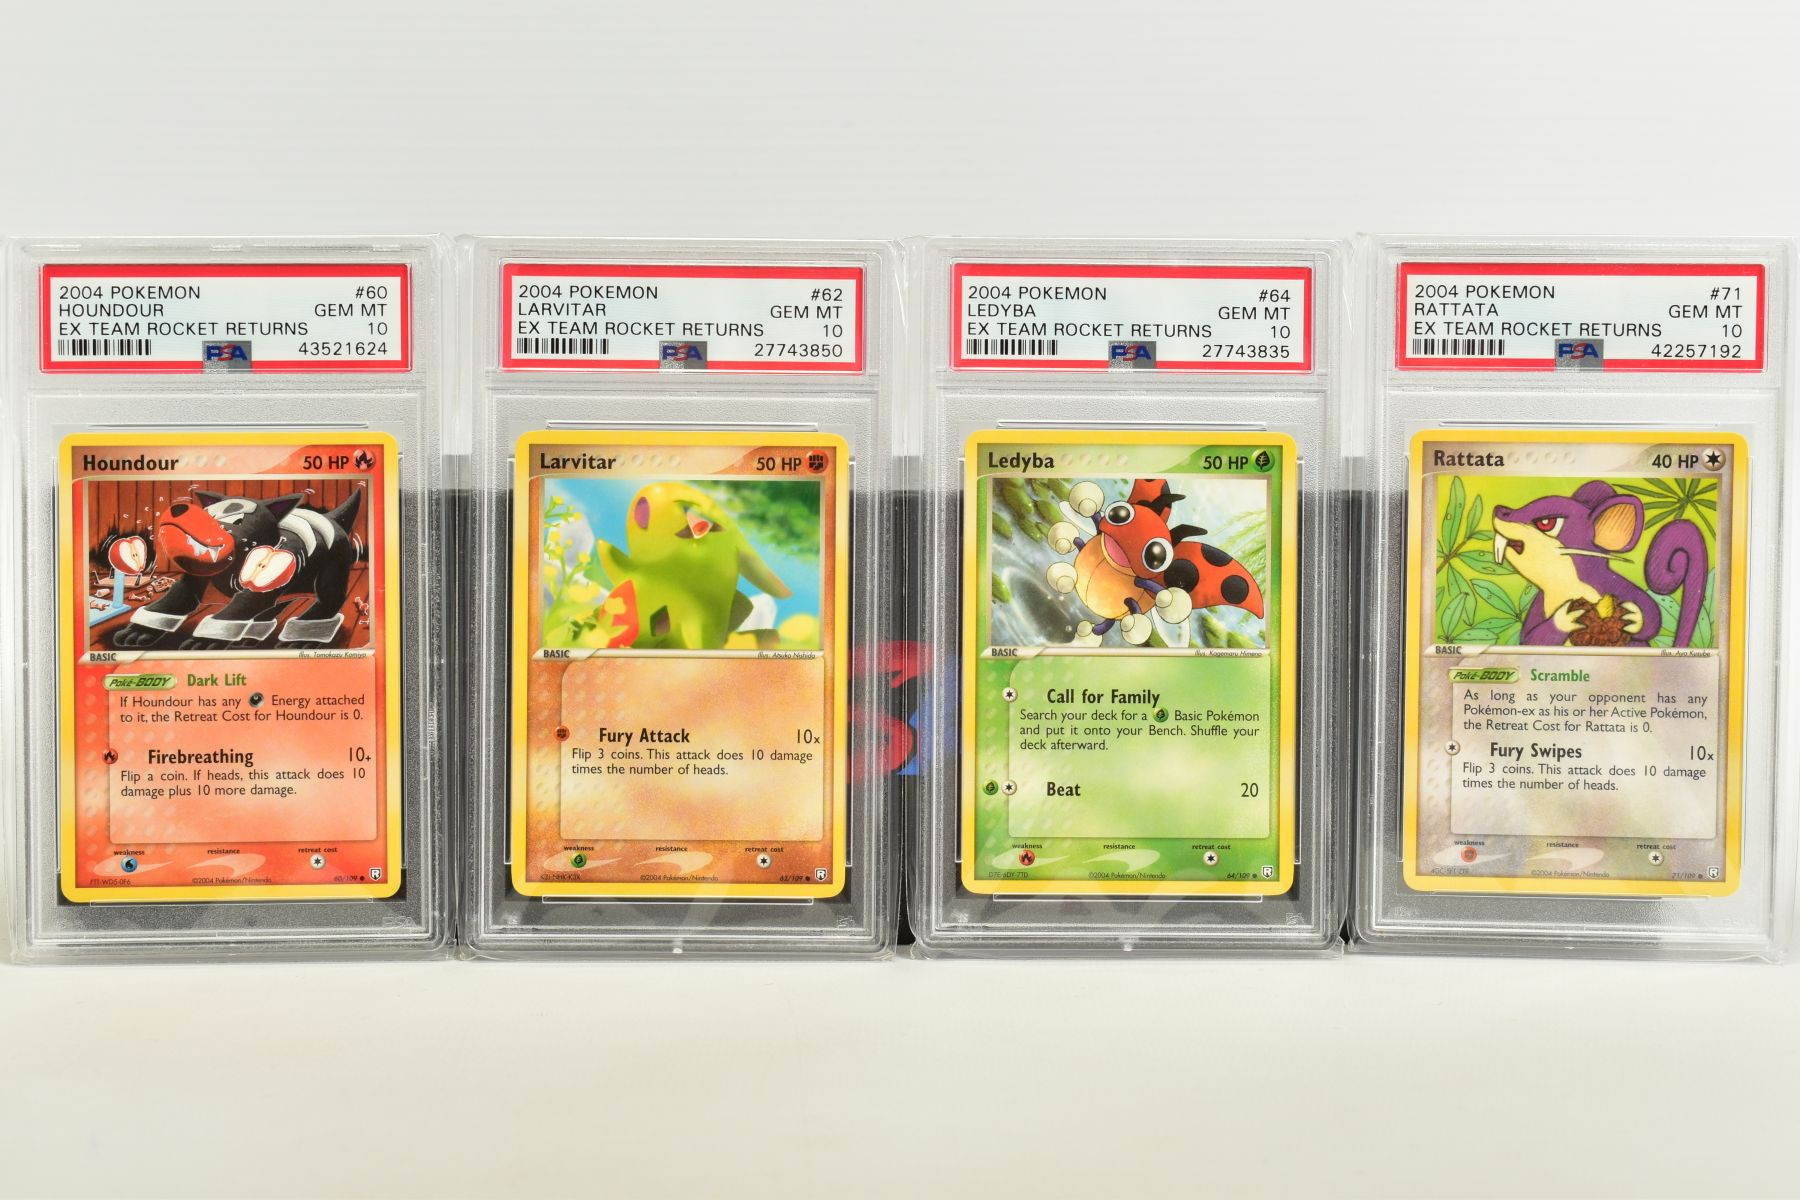 A QUANTITY OF PSA GRADED POKEMON EX TEAM ROCKET RETURNS AND EX RUBY & SAPPHIRE SET CARDS, all are - Image 8 of 15